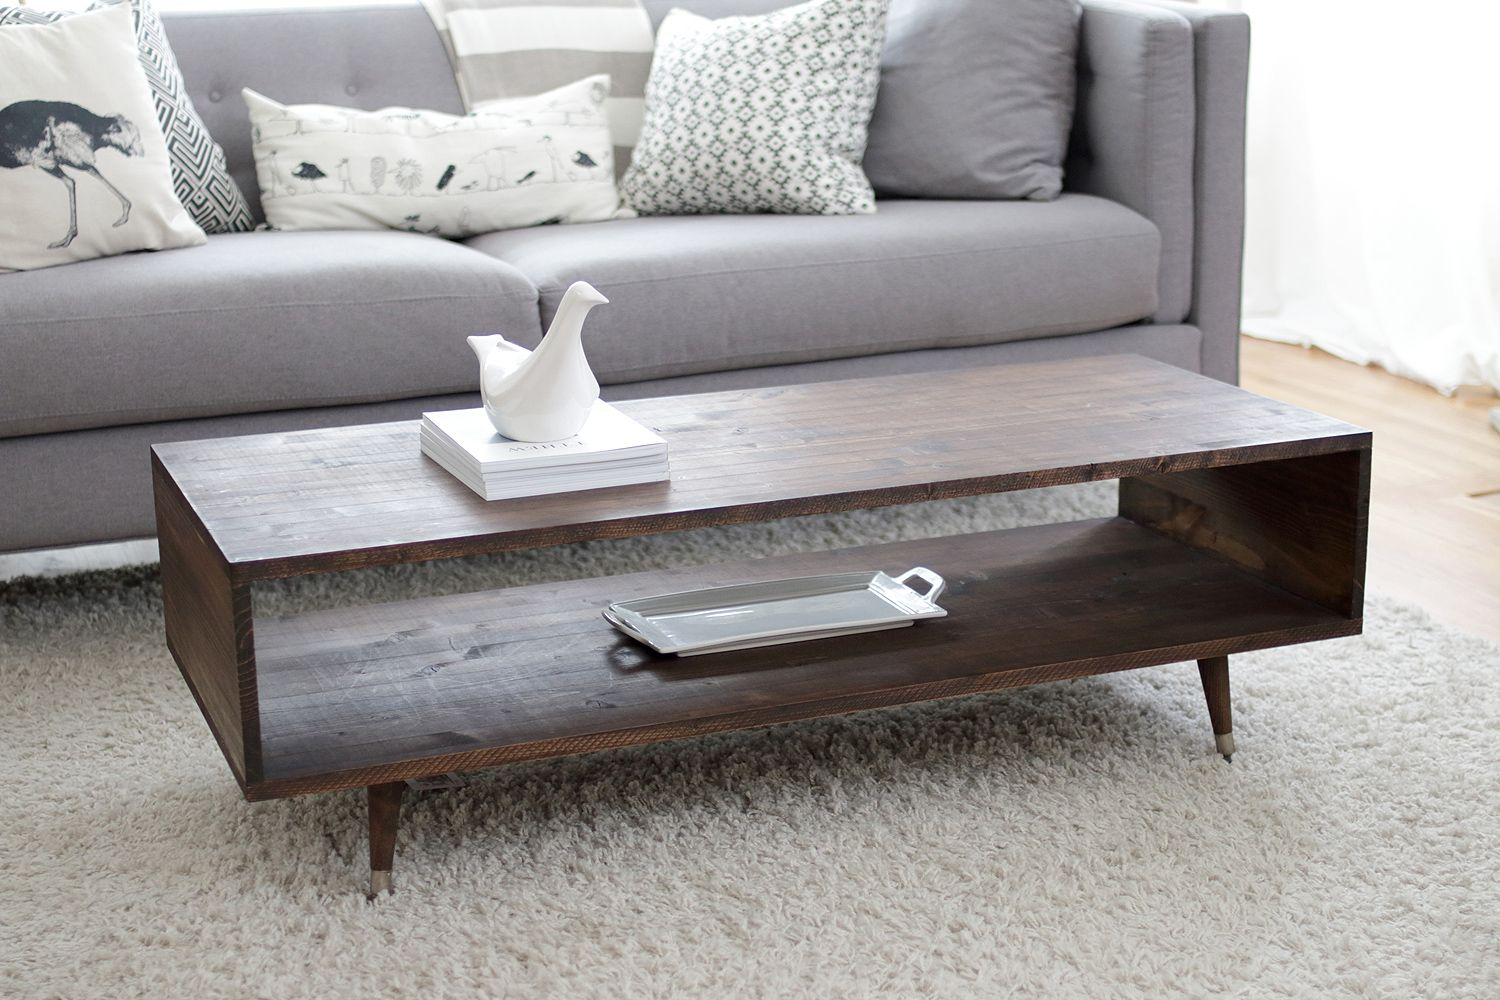 Build Your Own Mid Century Modern Coffee Table For 60 With